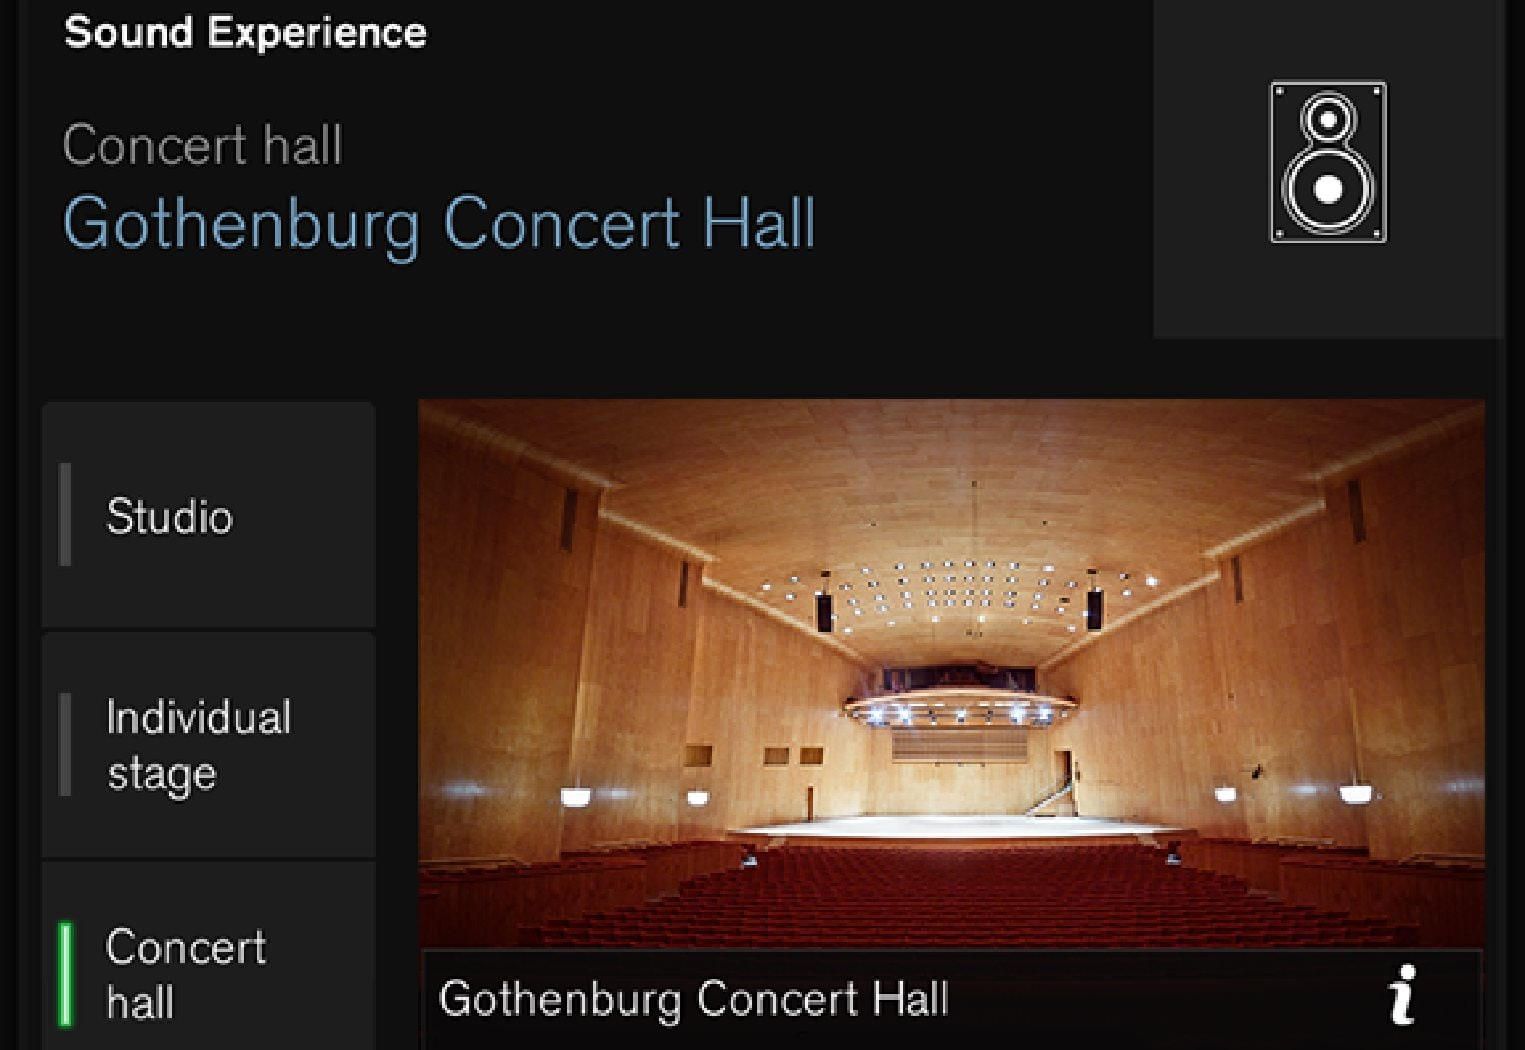 Audio mode that recreates the acoustics from Gothenburg Concert Hall.